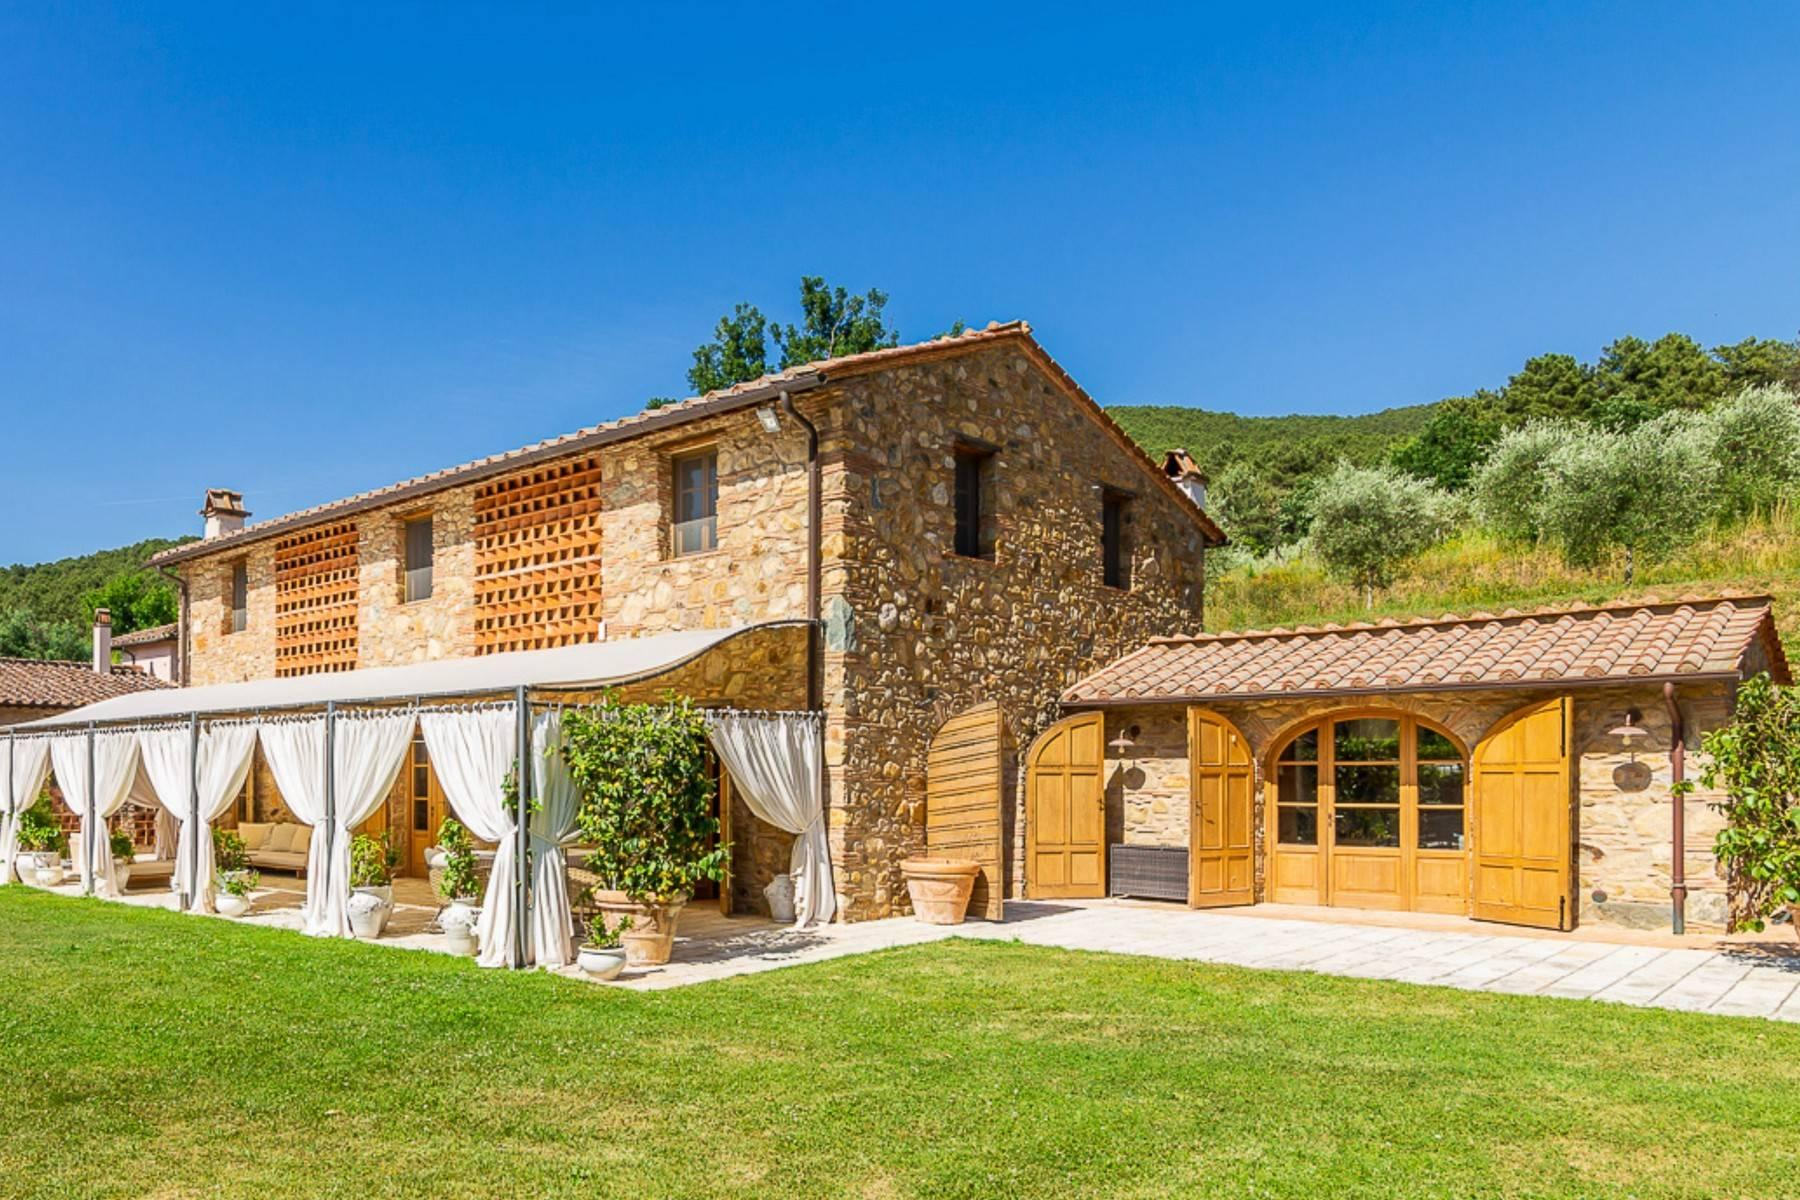 Majestic Luxury Villa with outbuildings on the hills south of Lucca - 2